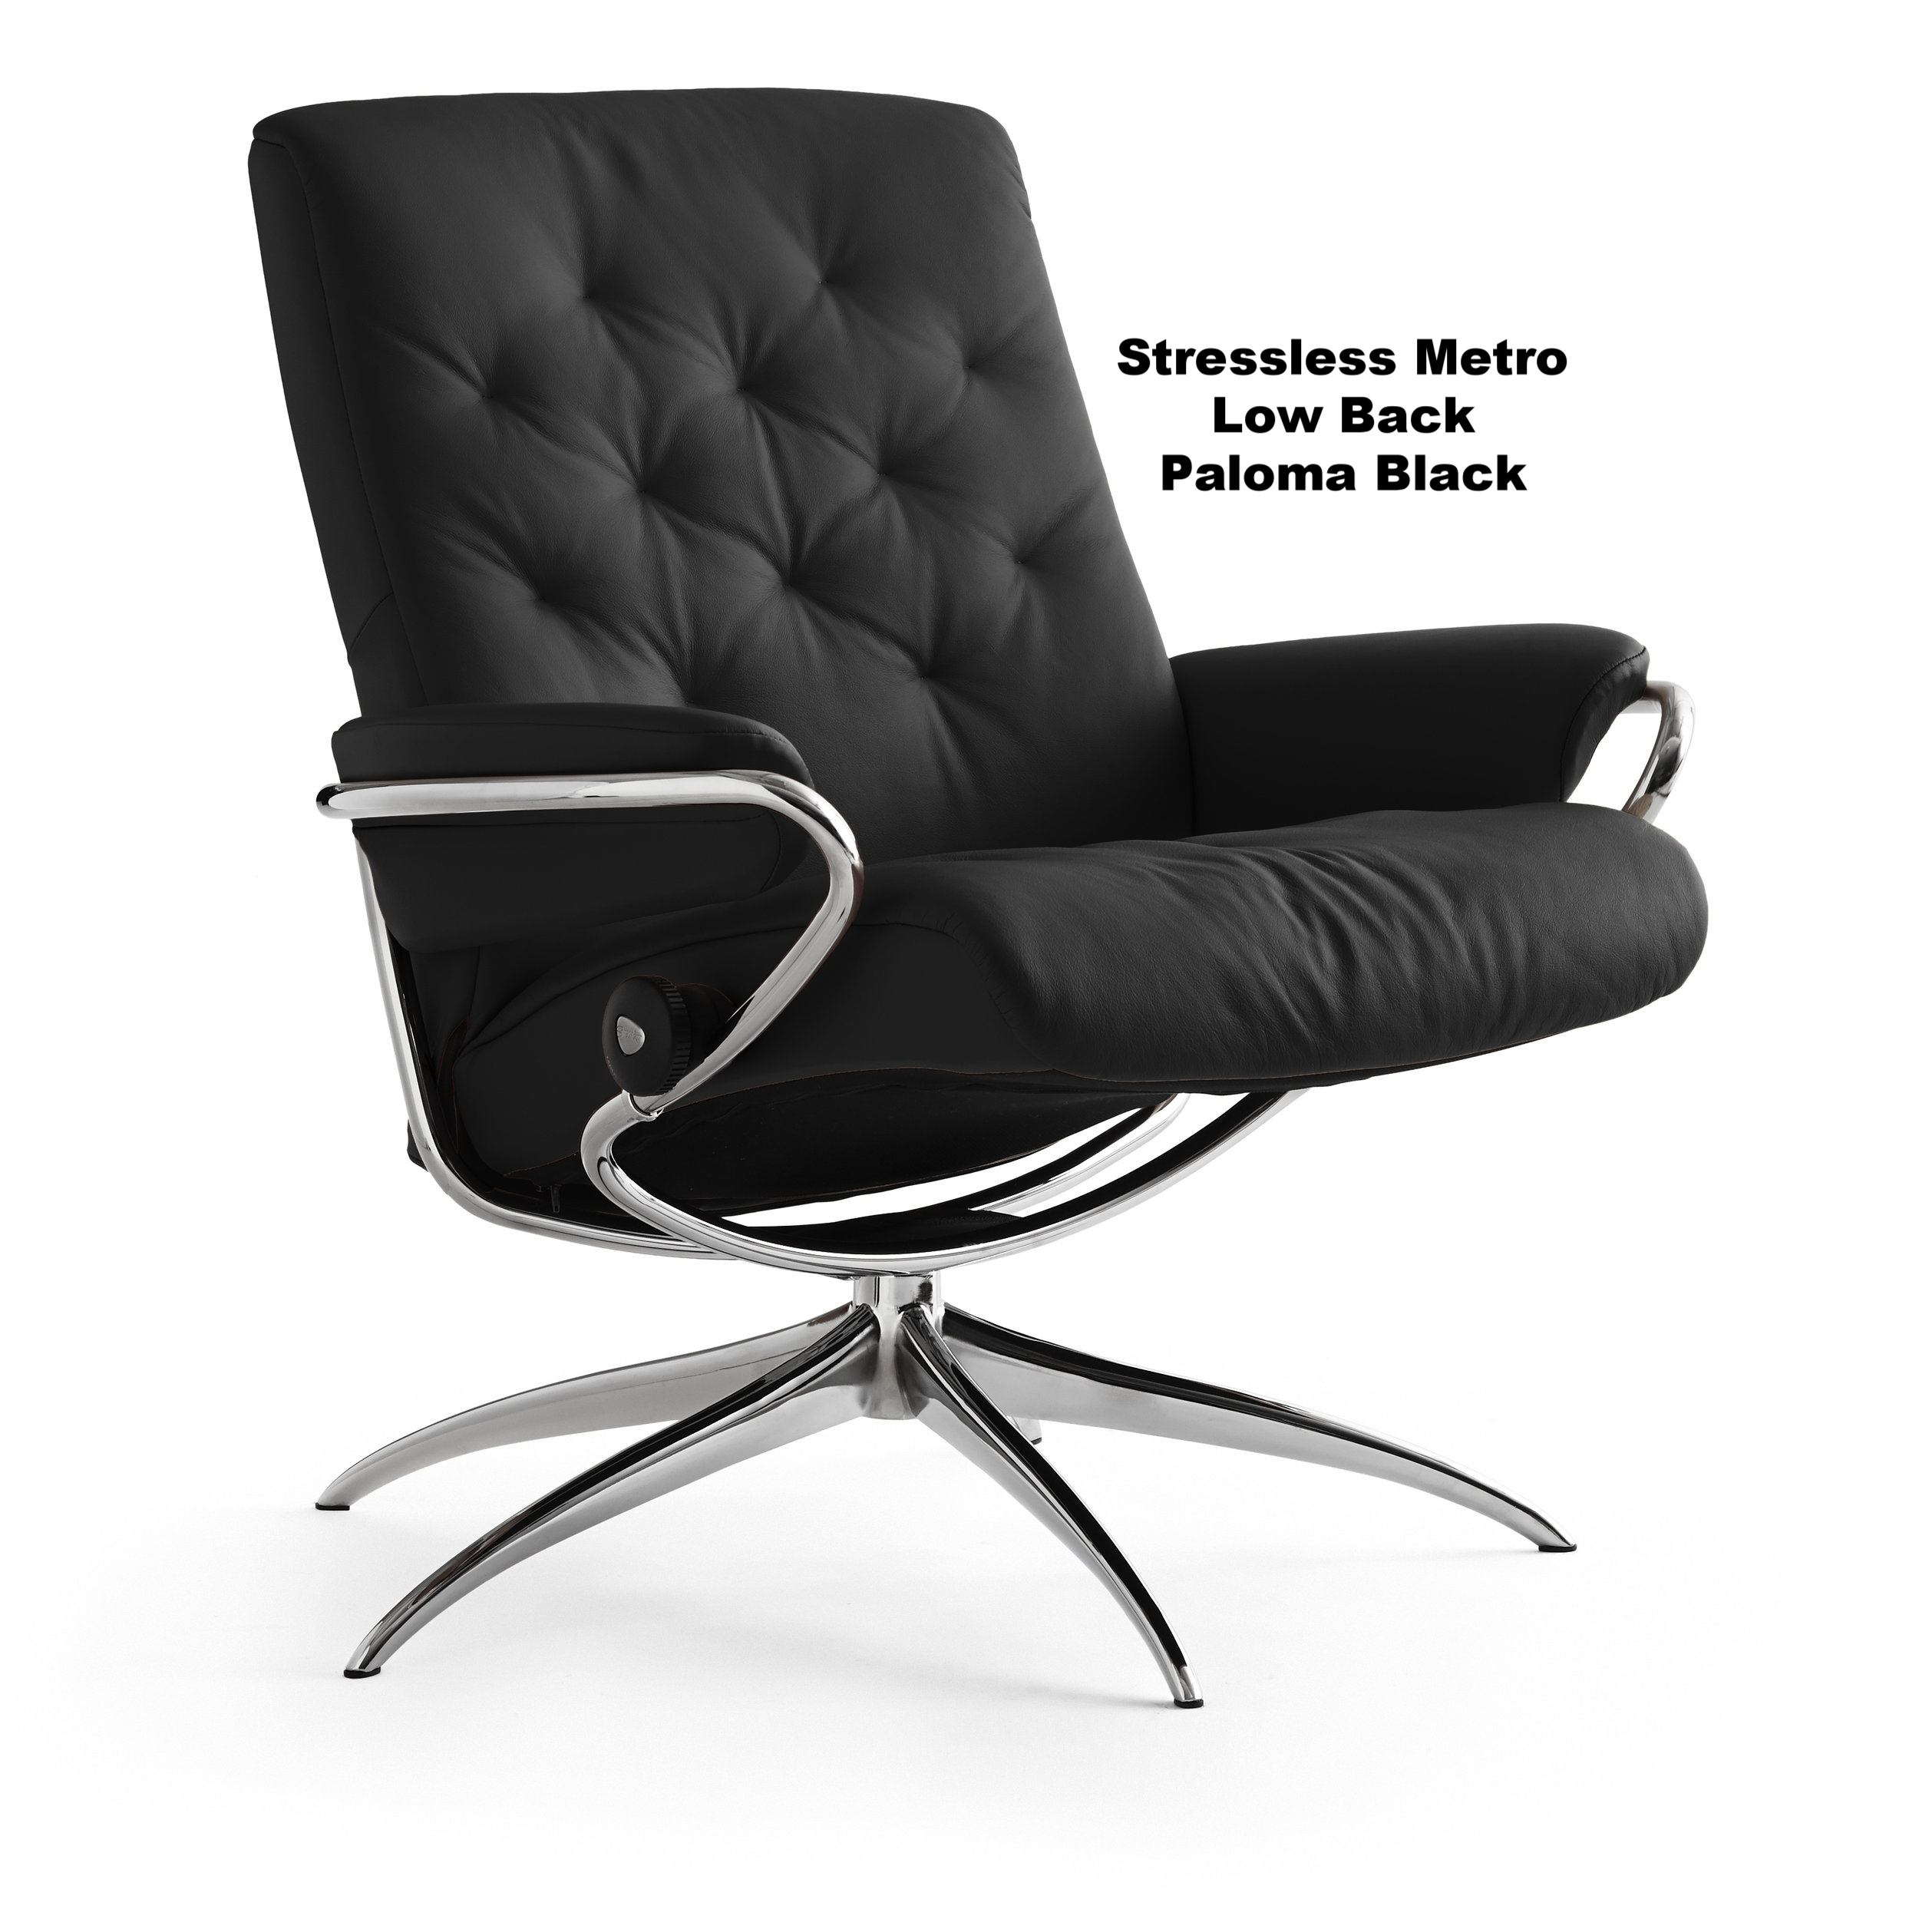 Stressless Sessel Metro Stressless Metro Low Back